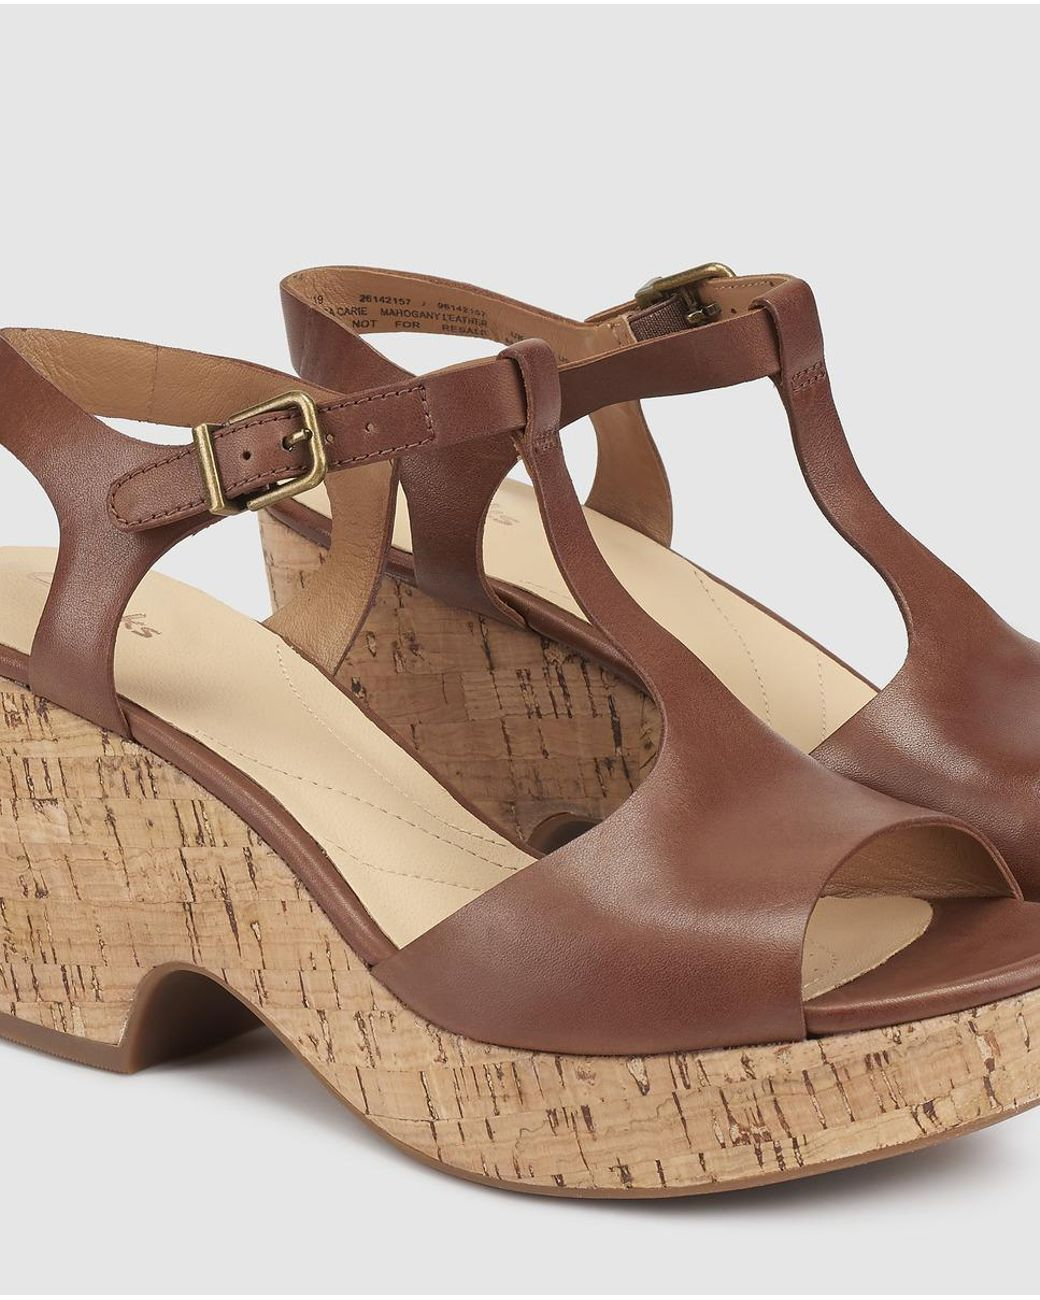 Heel High Brown Leather With Sole Sandals Women's Cork XP8nwkN0OZ